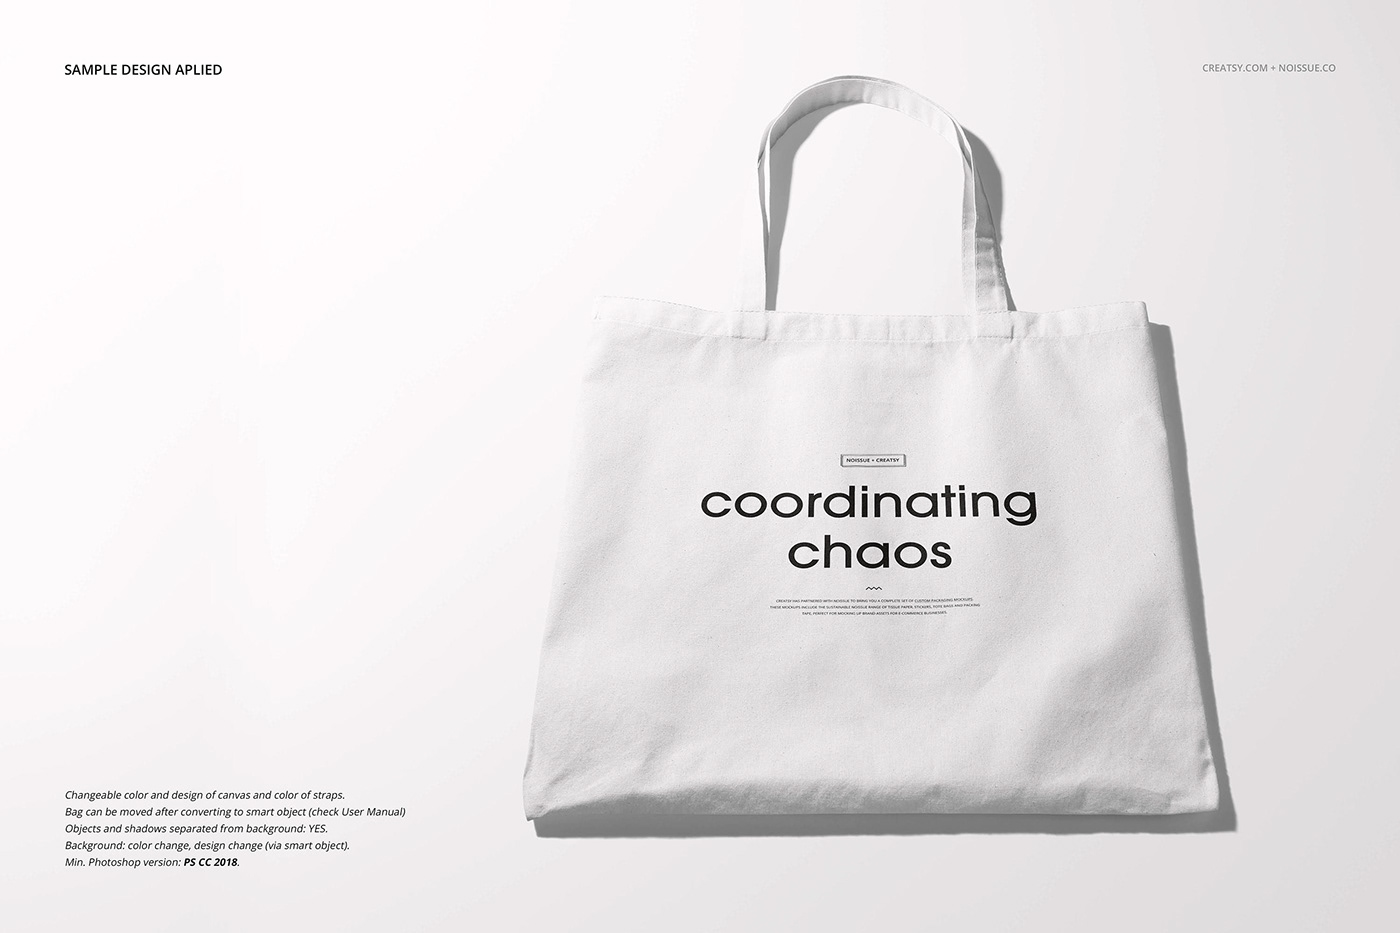 Download free 38+ tote bag mockup behance png , you can use tote bag mock up free to showcase your design in a photorealistic look. Noissue Tote Bag Mockup Bundle On Behance